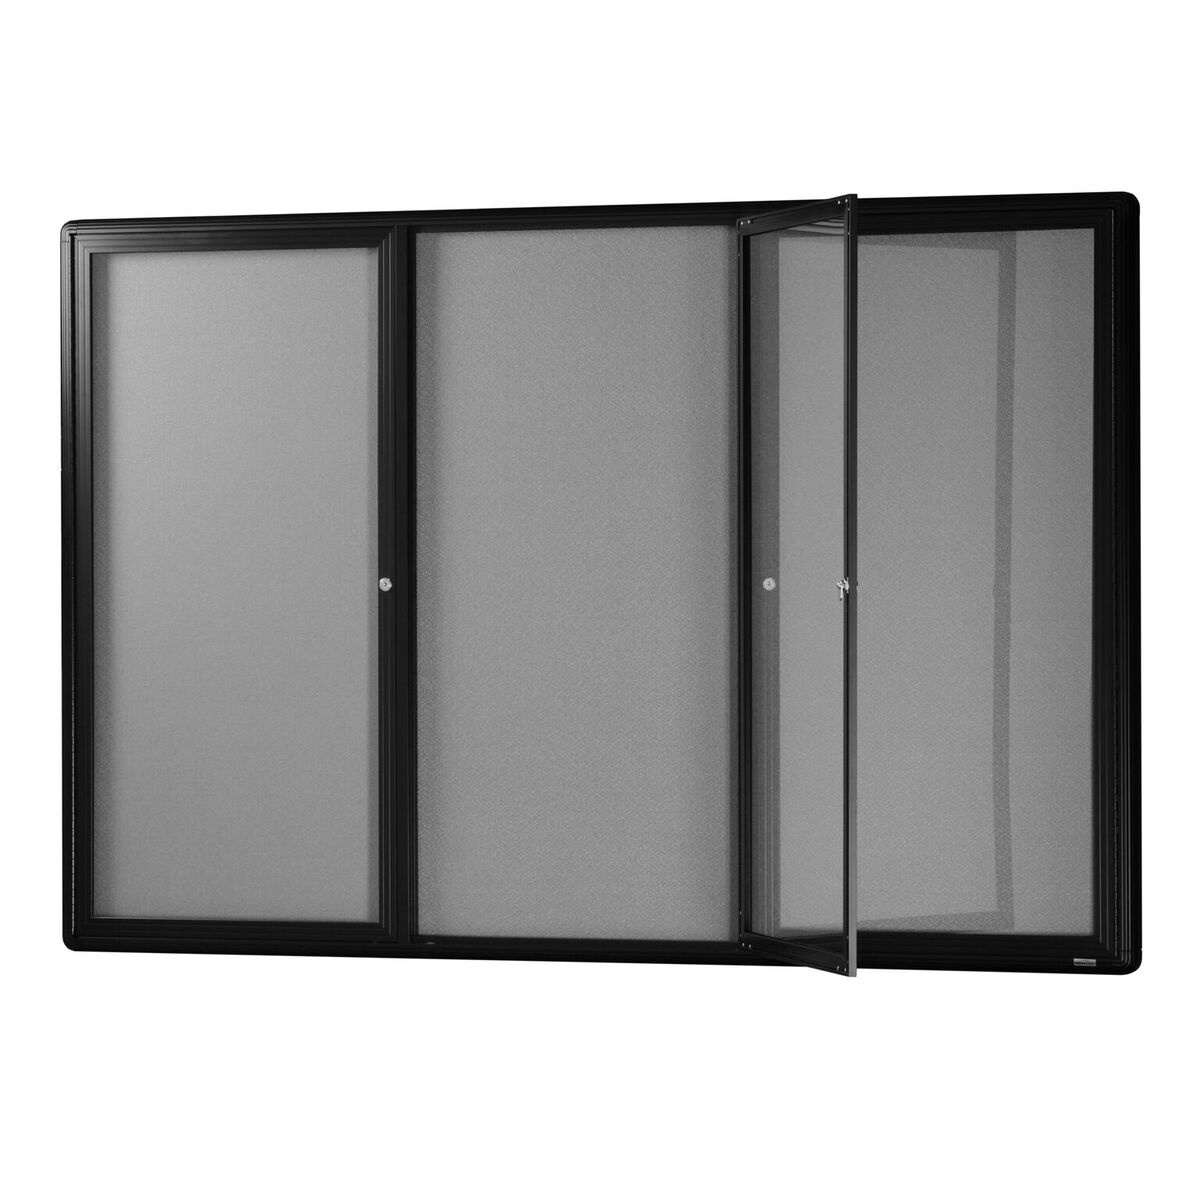 Hinged Three Door Glass Case *Grey Felt/ Black Frame*